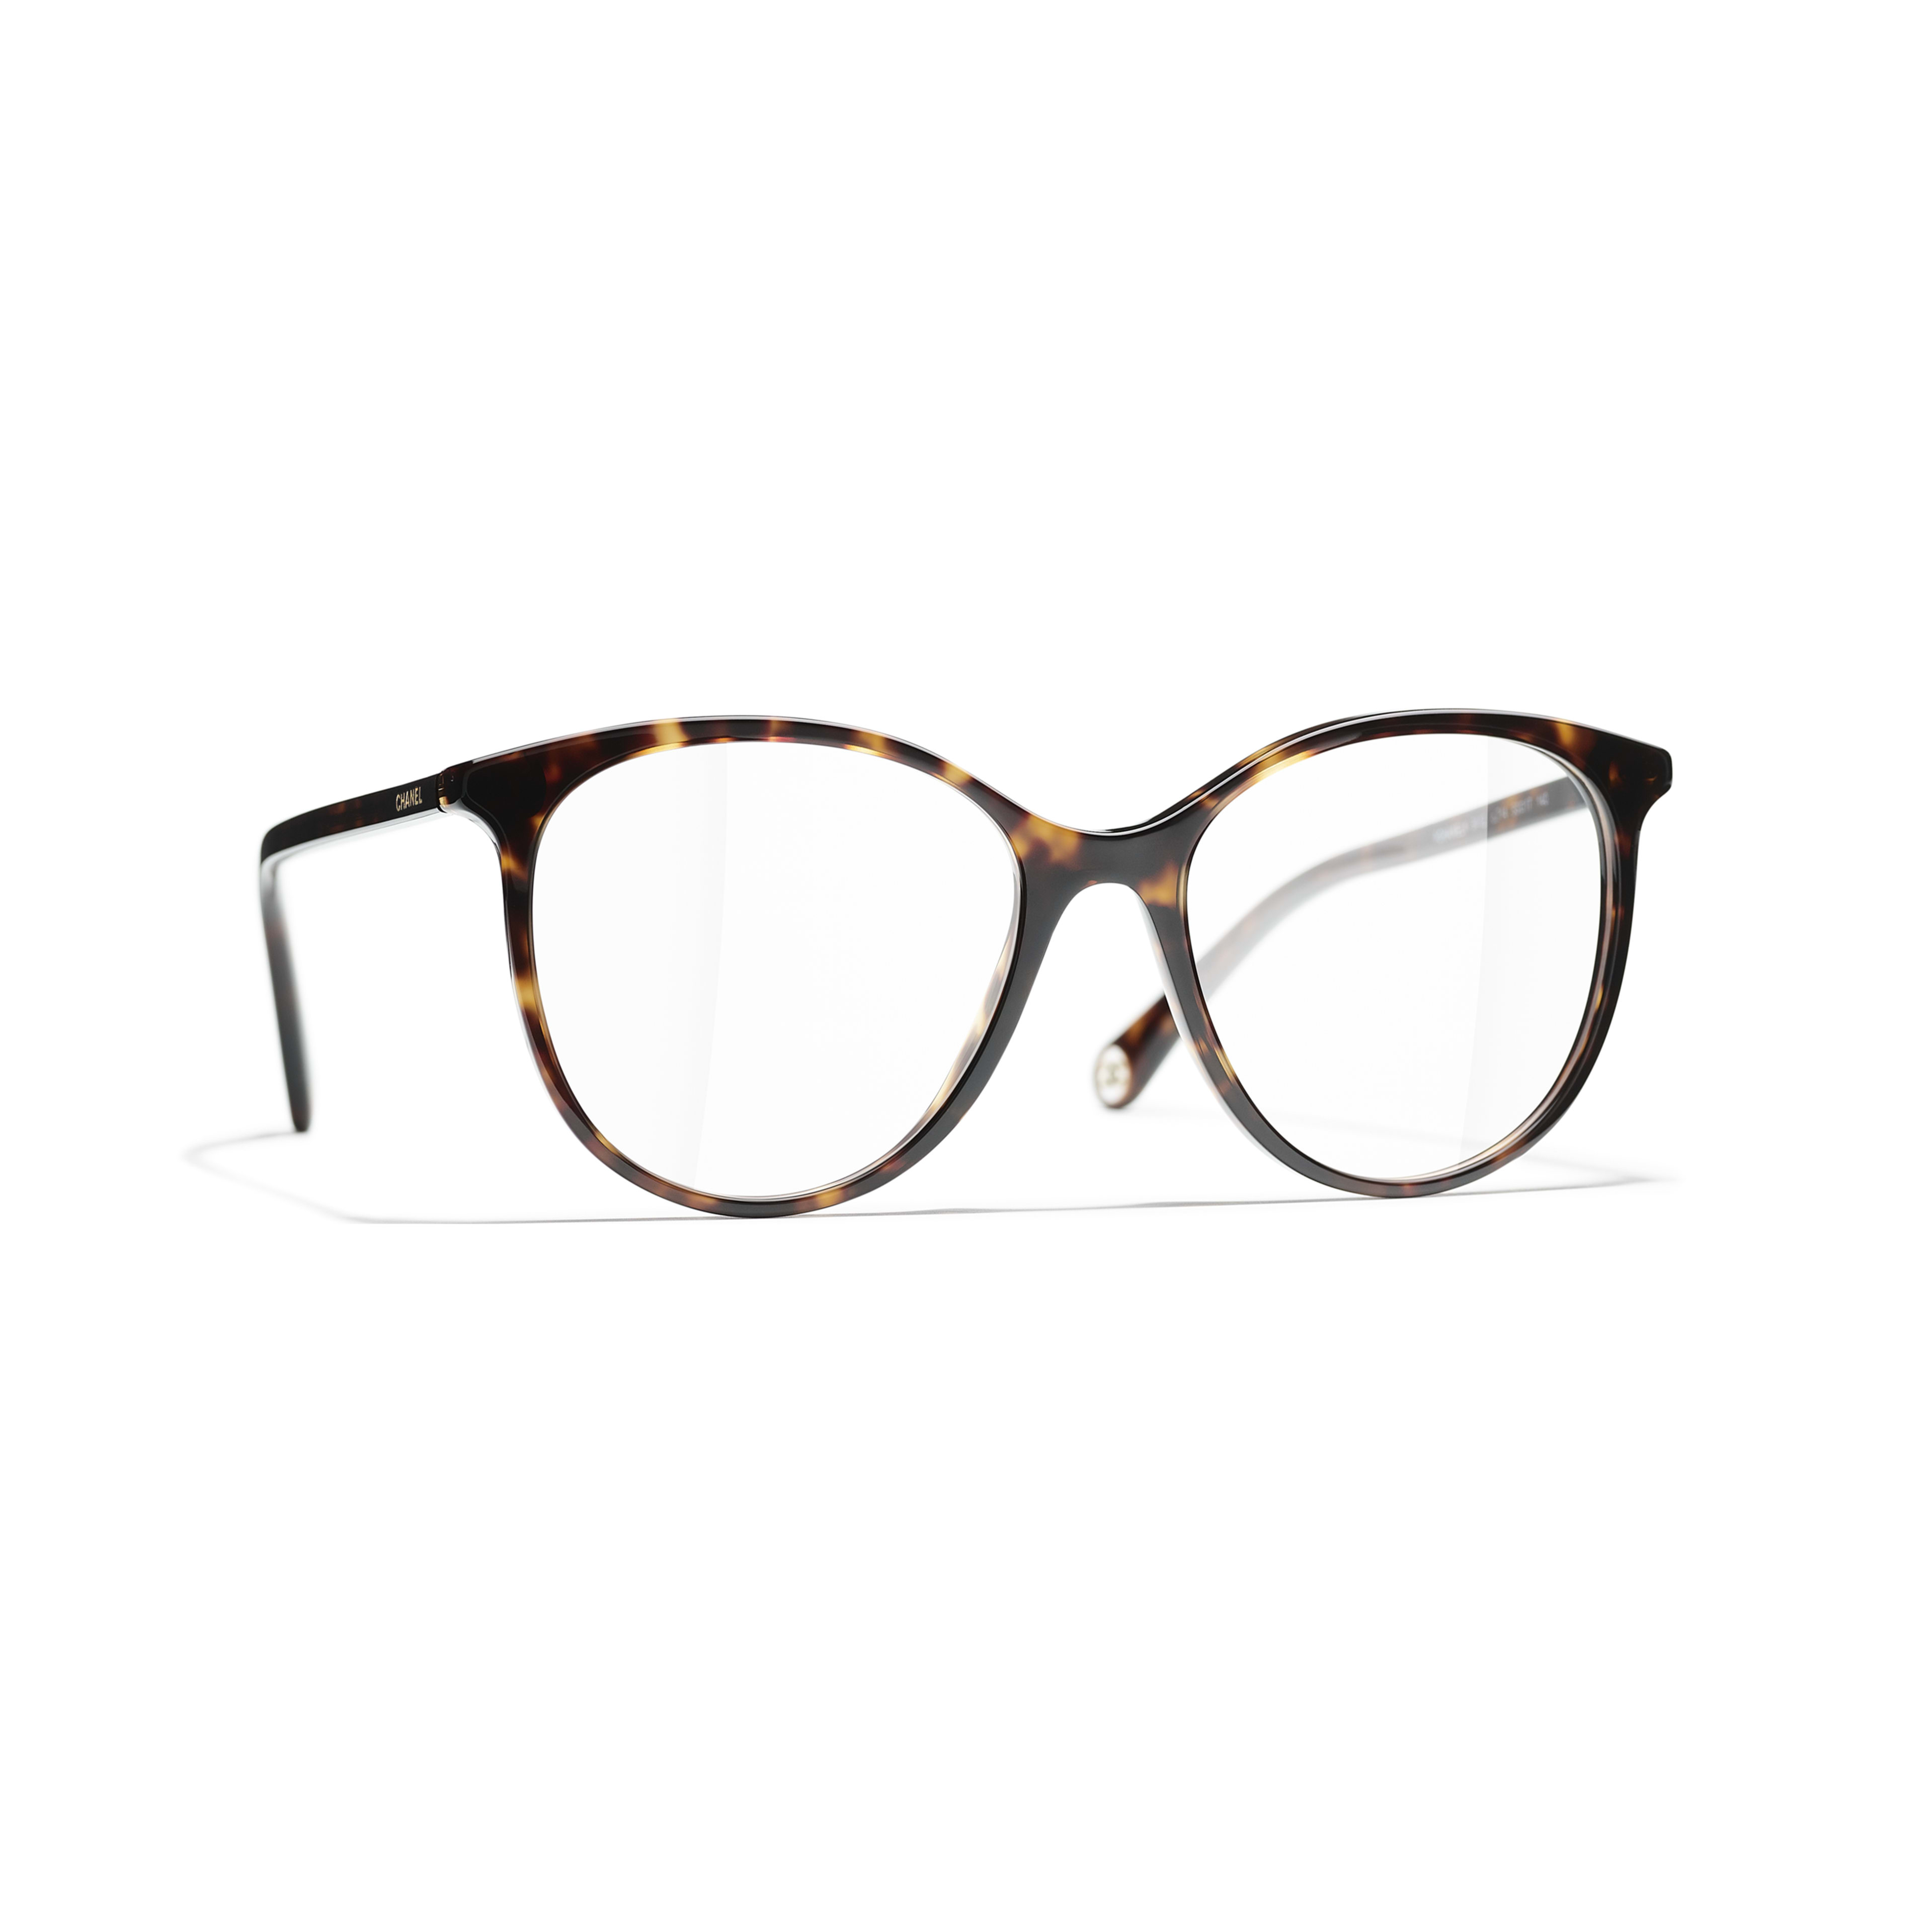 Pantos Eyeglasses - Dark Tortoise - Acetate - CHANEL - Default view - see standard sized version